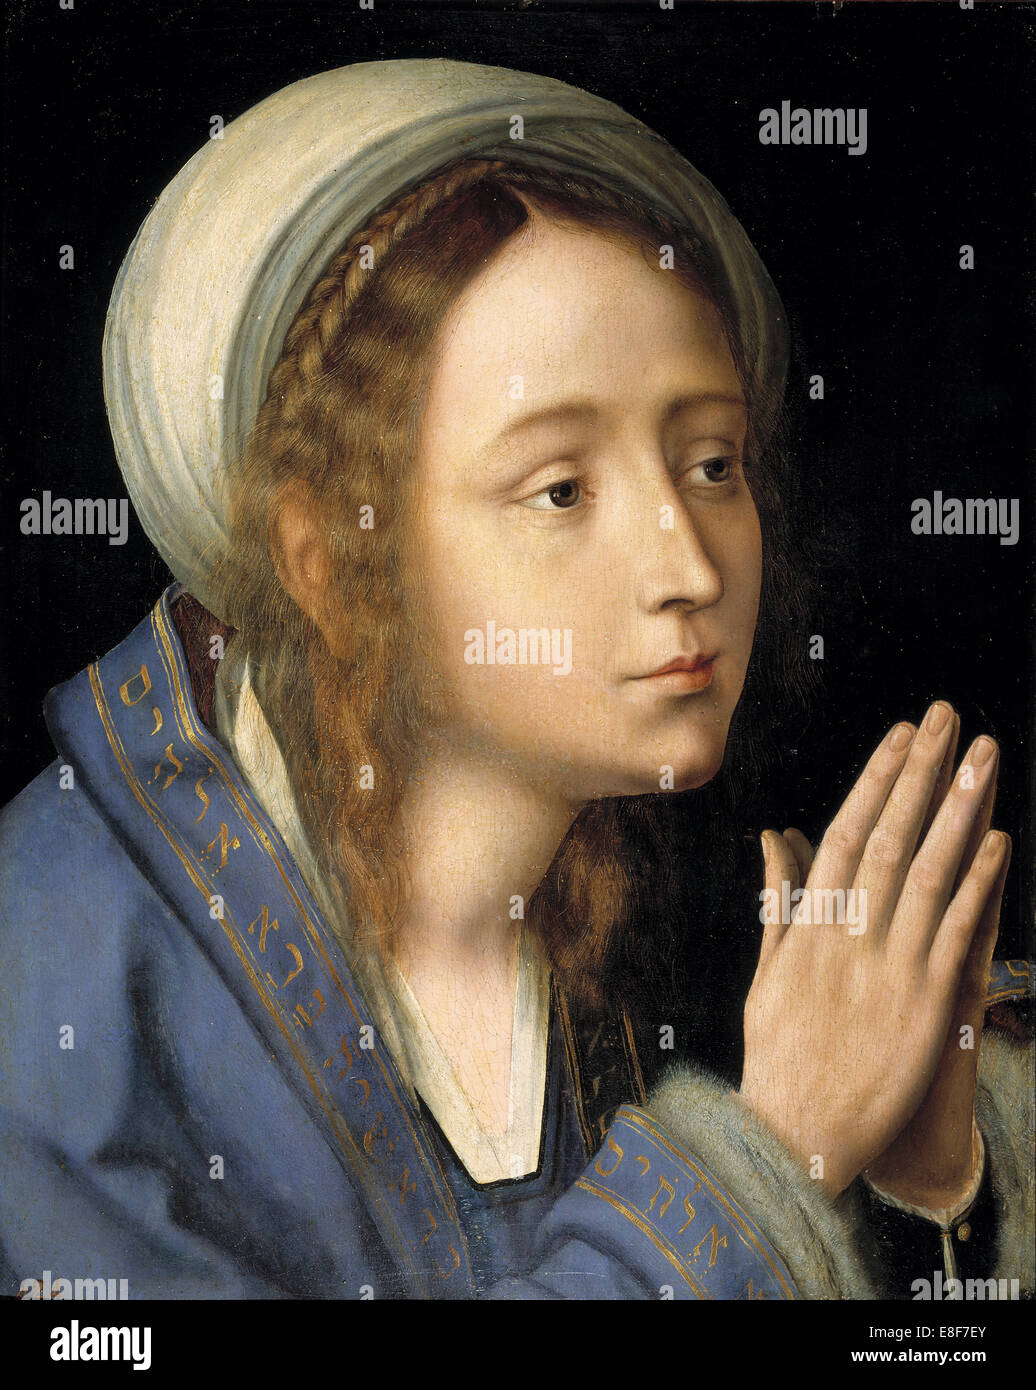 The Virgin Mary. Artist: Massys, Quentin (1466?1530) - Stock Image